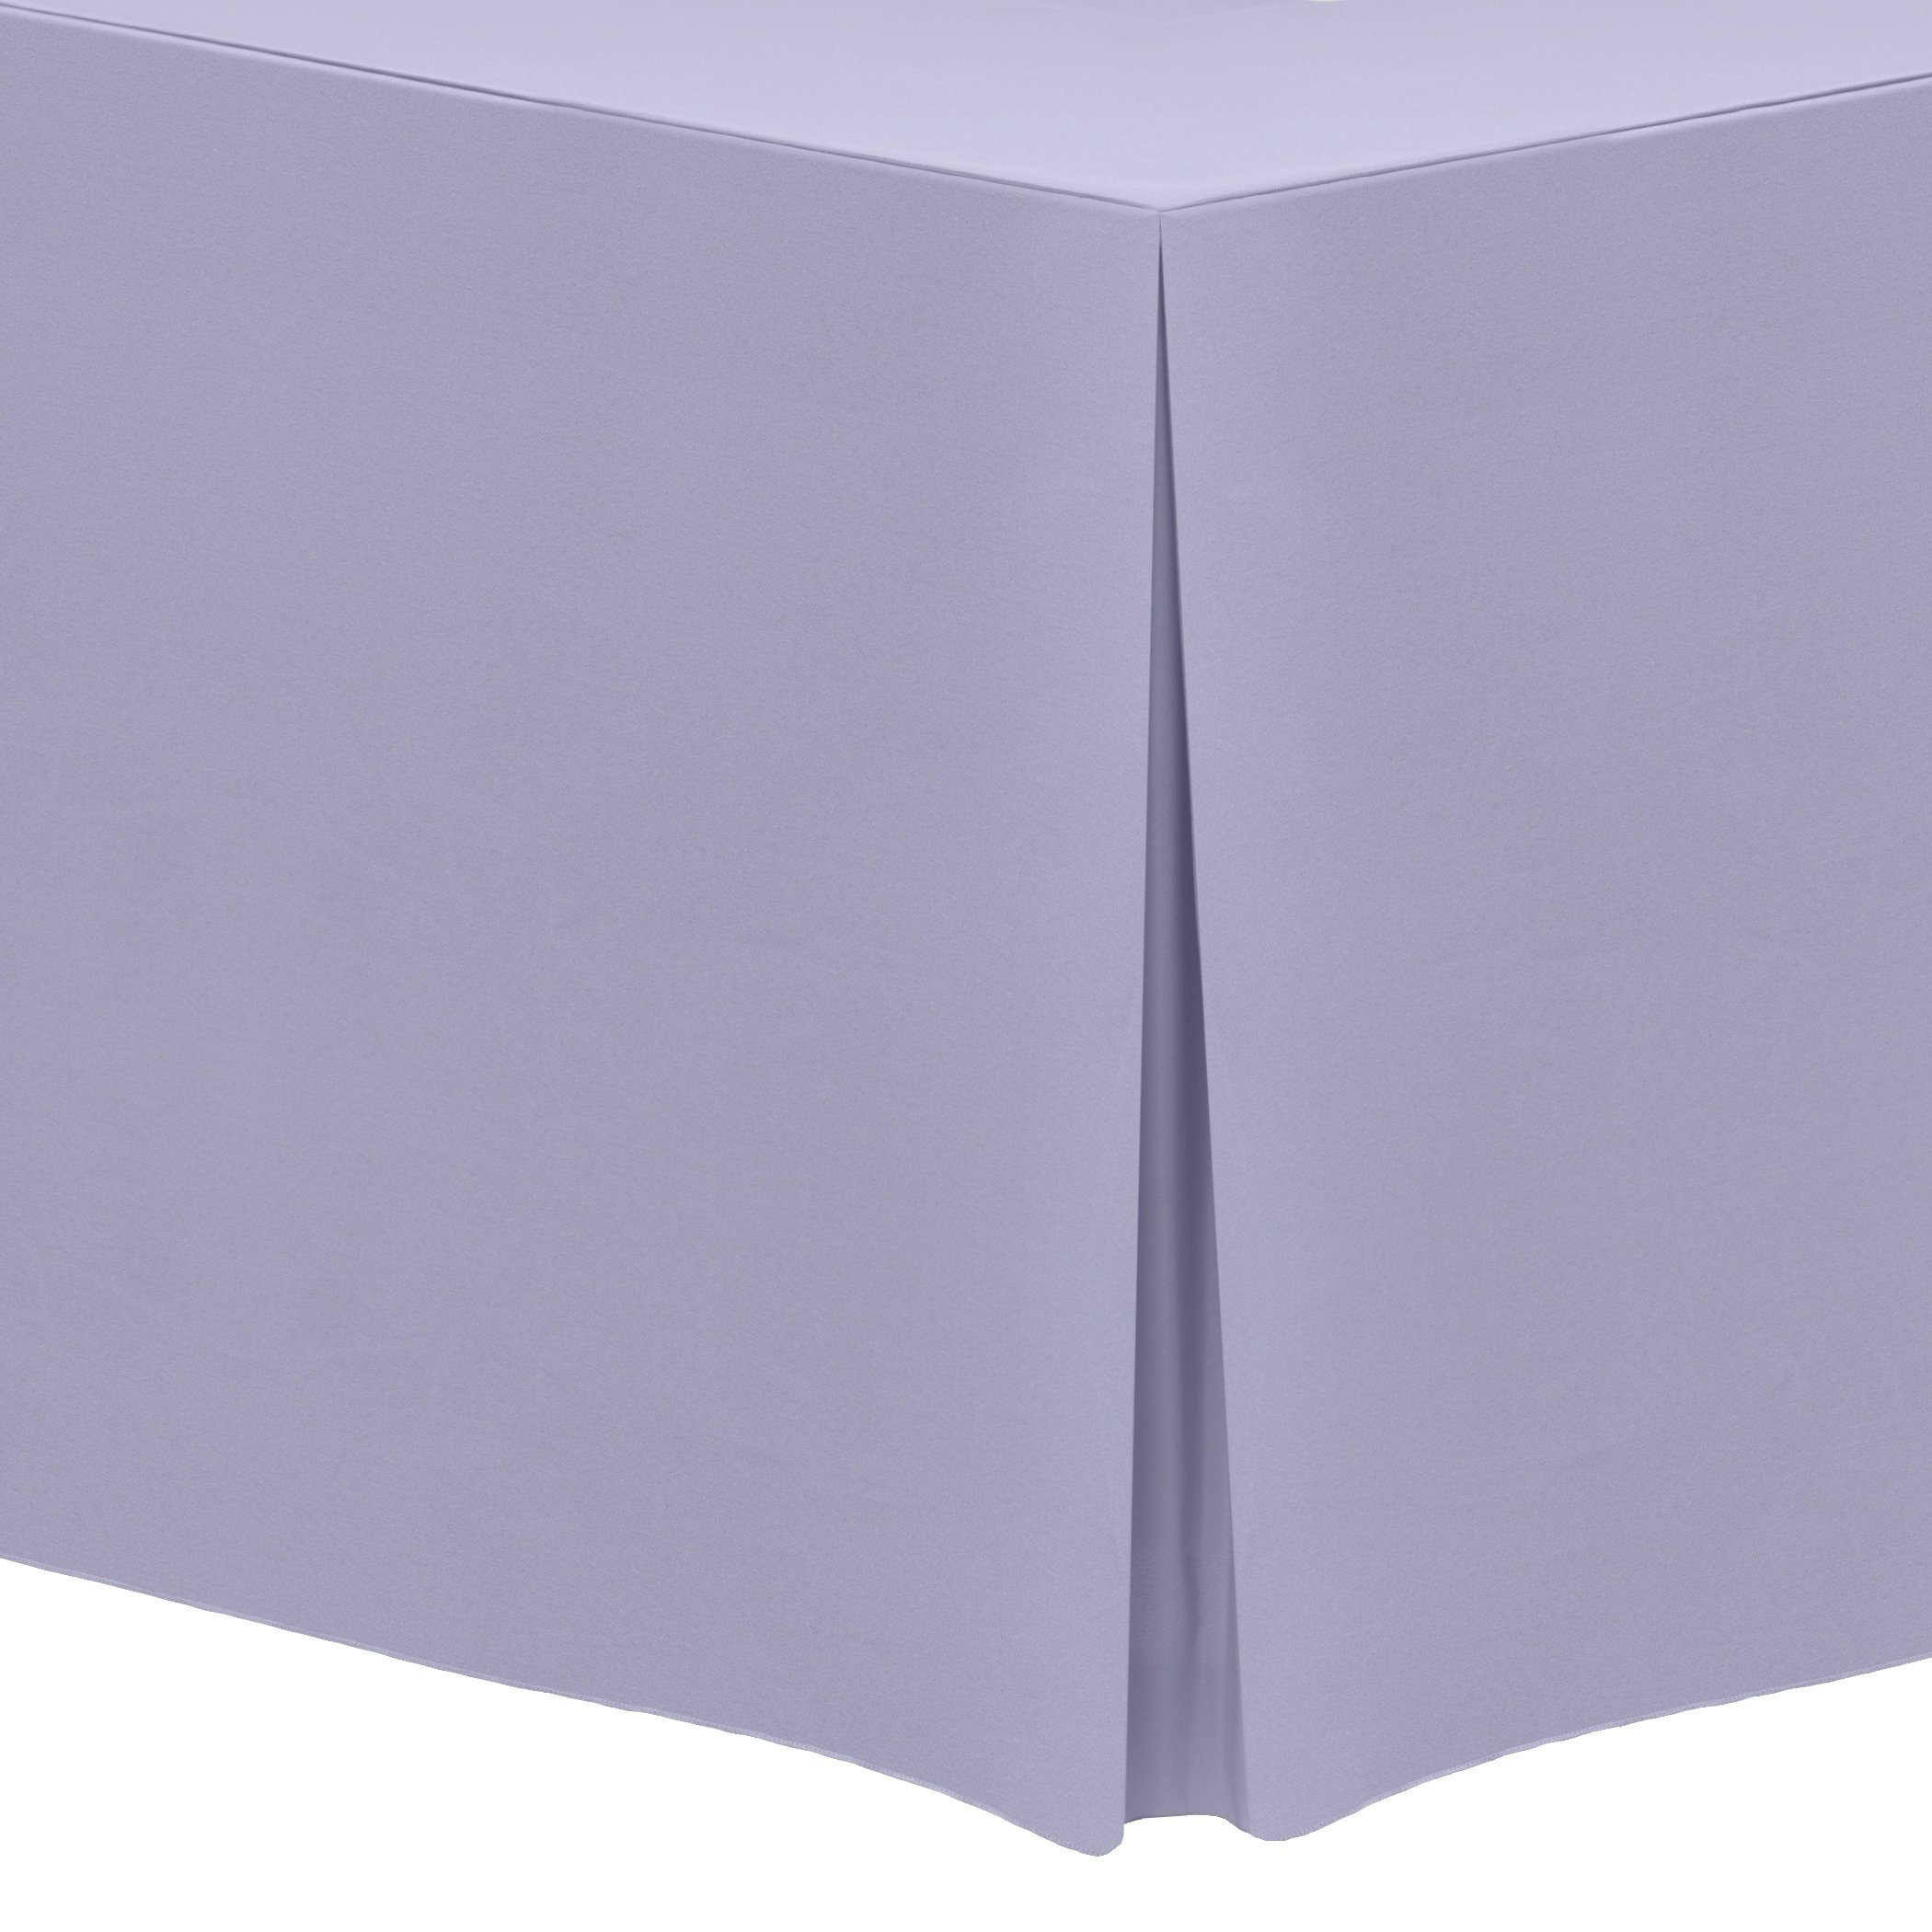 Ultimate Textile (3 Pack) 6 ft. Fitted Polyester Tablecloth - for 30 x 72-Inch Banquet and Folding Rectangular Tables, Lilac Light Purple